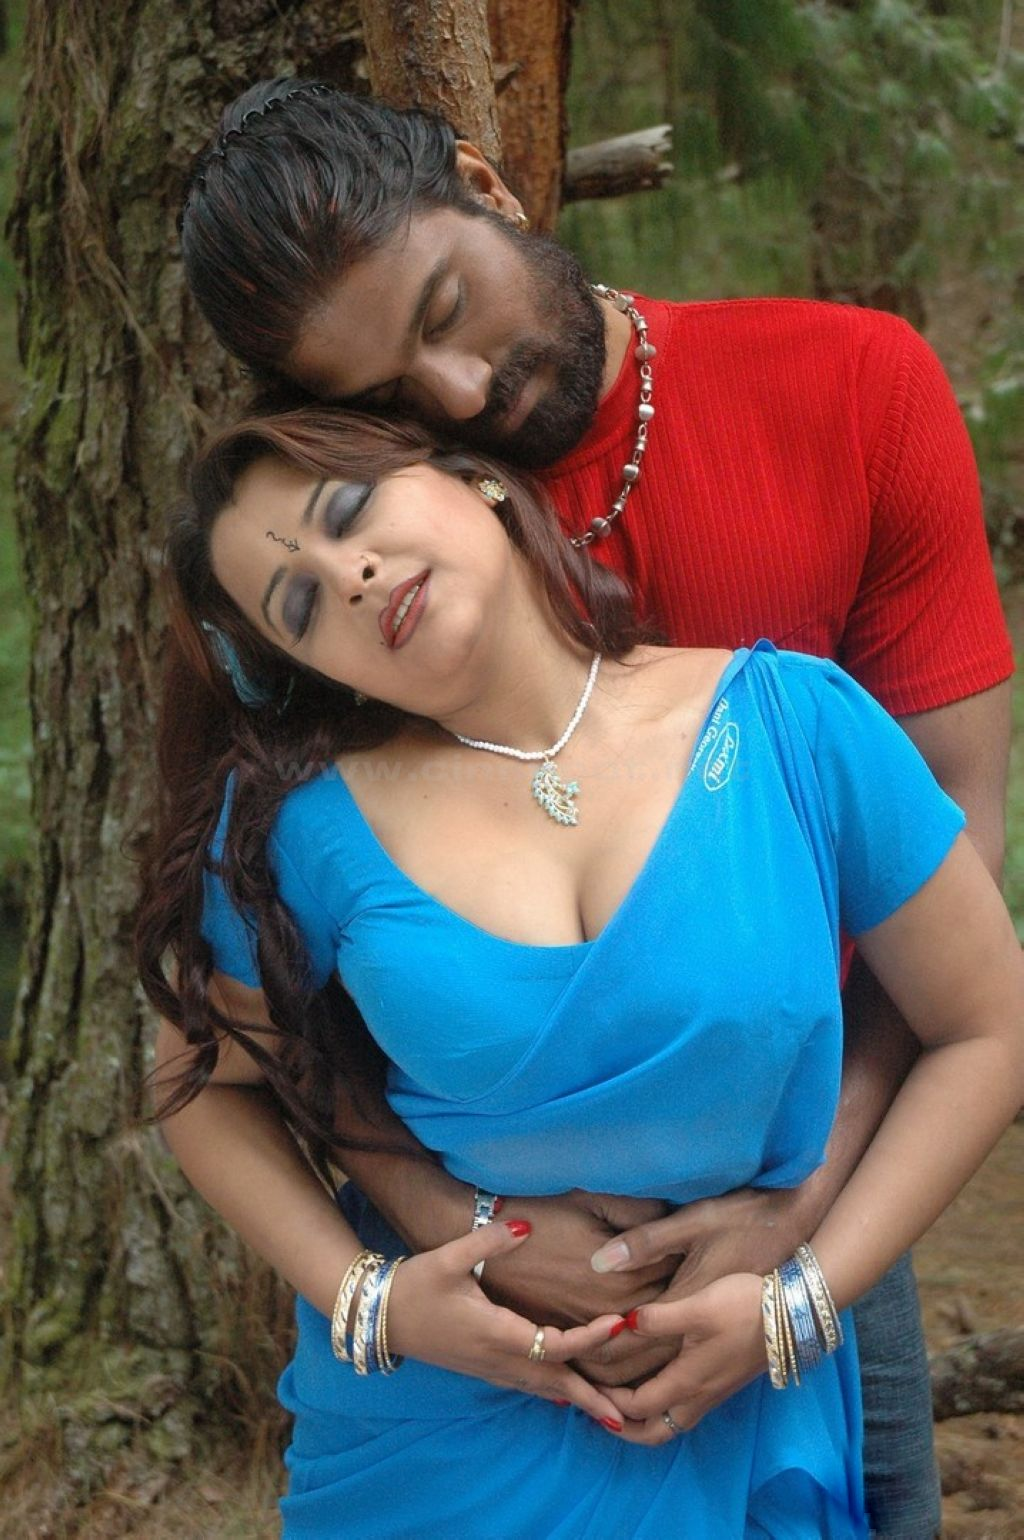 South Indian Sex Bomb Actress Showing Sexy Big Boombs - HD